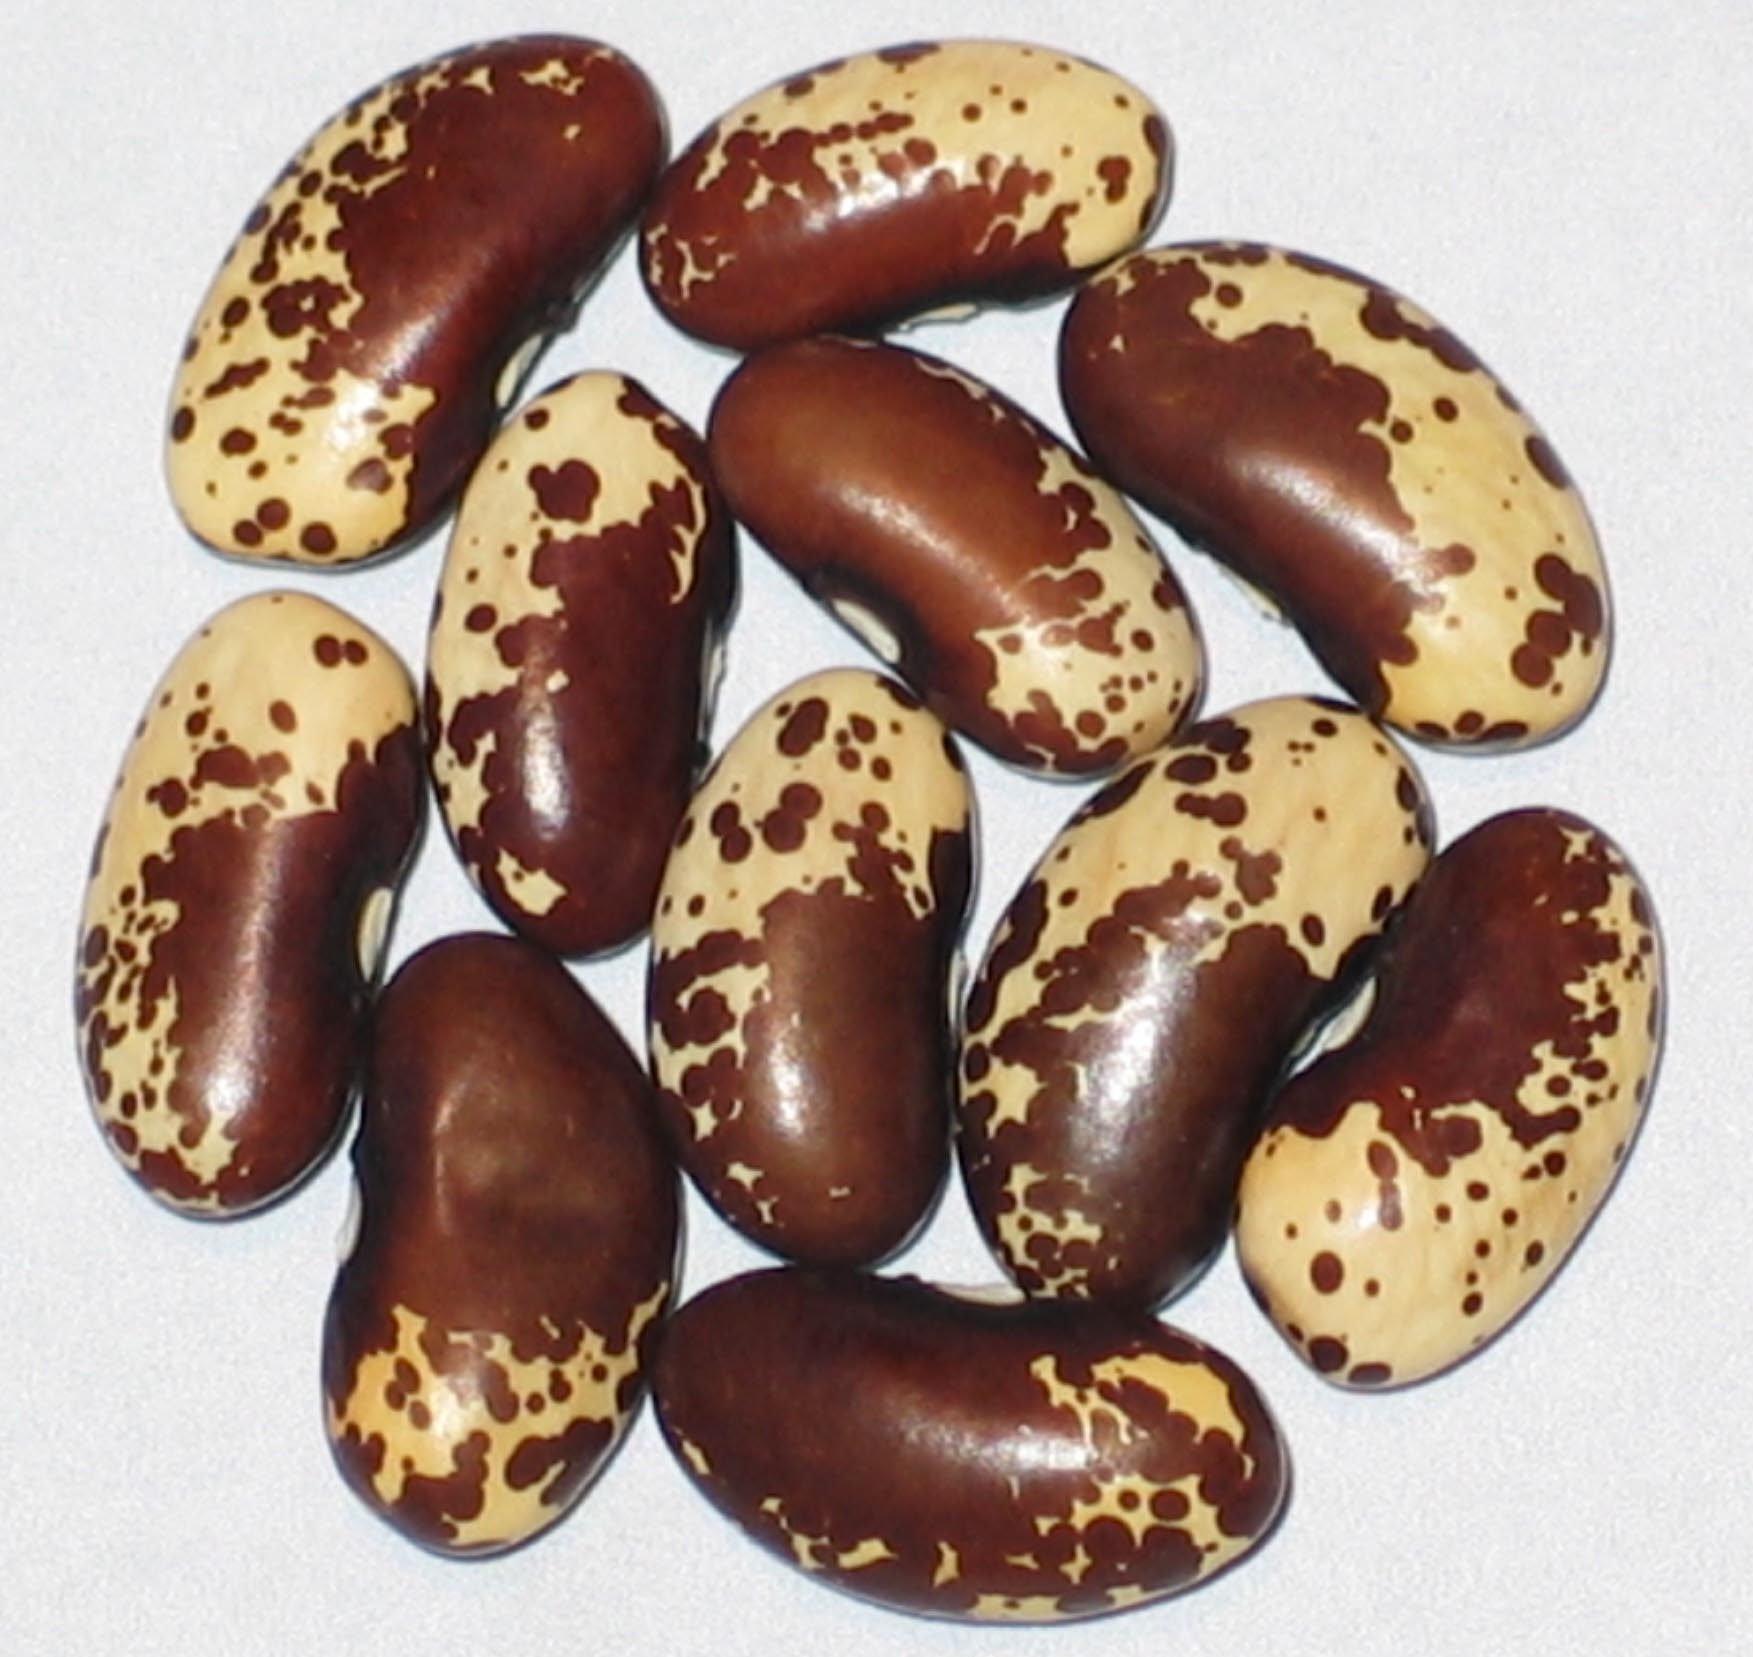 image of a Pawnee beans